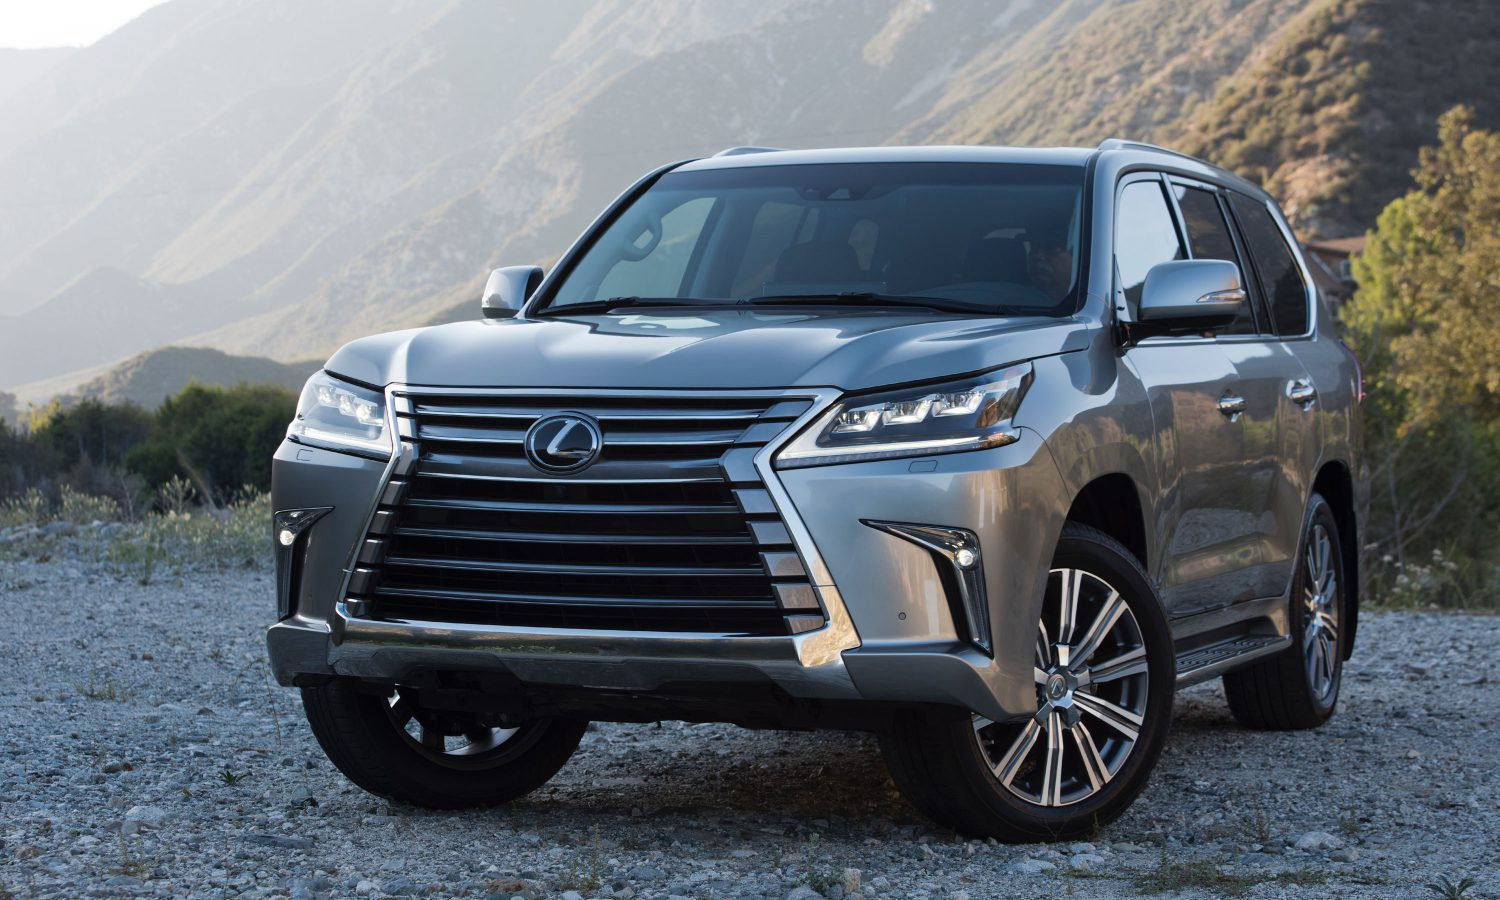 Making a Classic Entrance: Lexus Debuts Refreshed 2016 LX 570 Luxury Utility Vehicle at Pebble Beach Concours d? Elegance